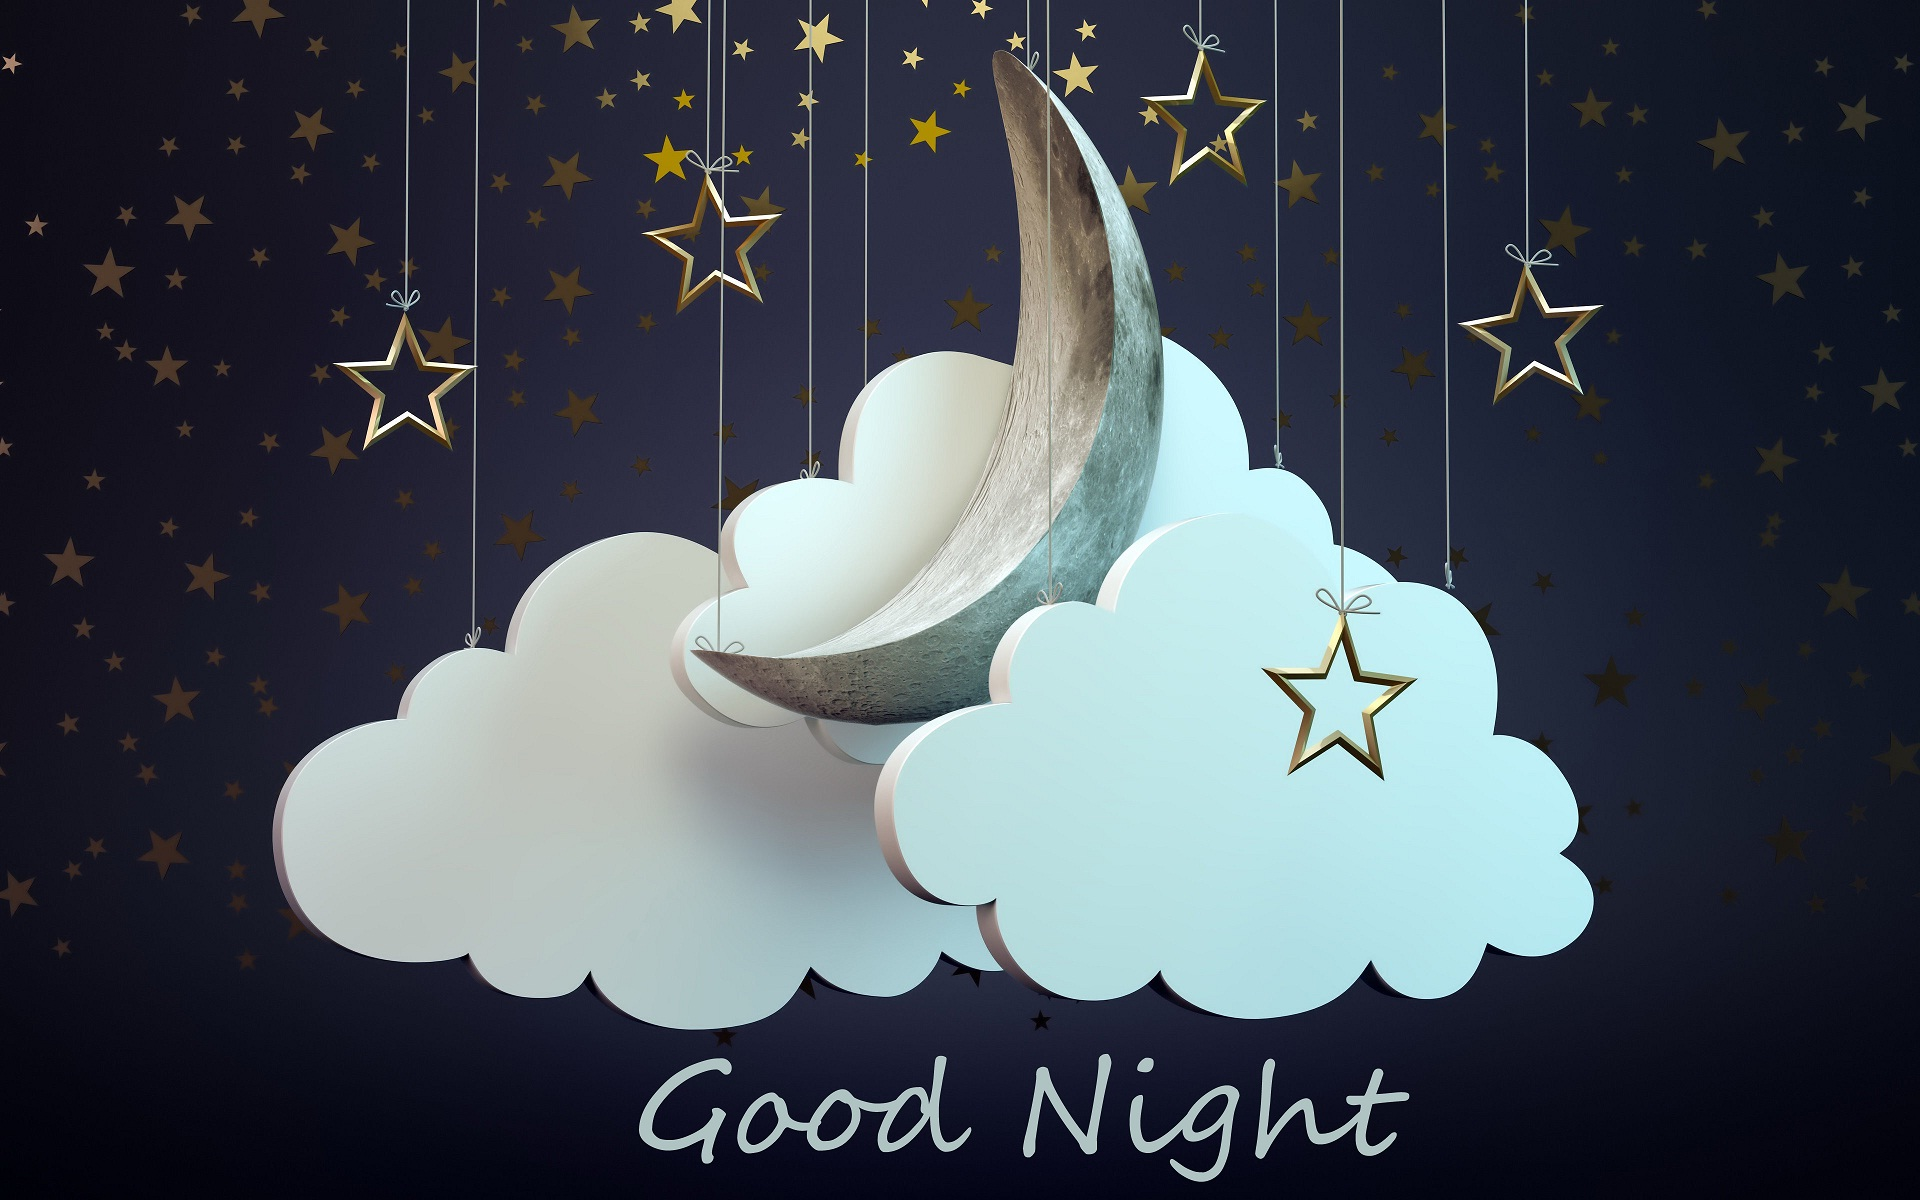 Good night friends wishes HD wallpaper